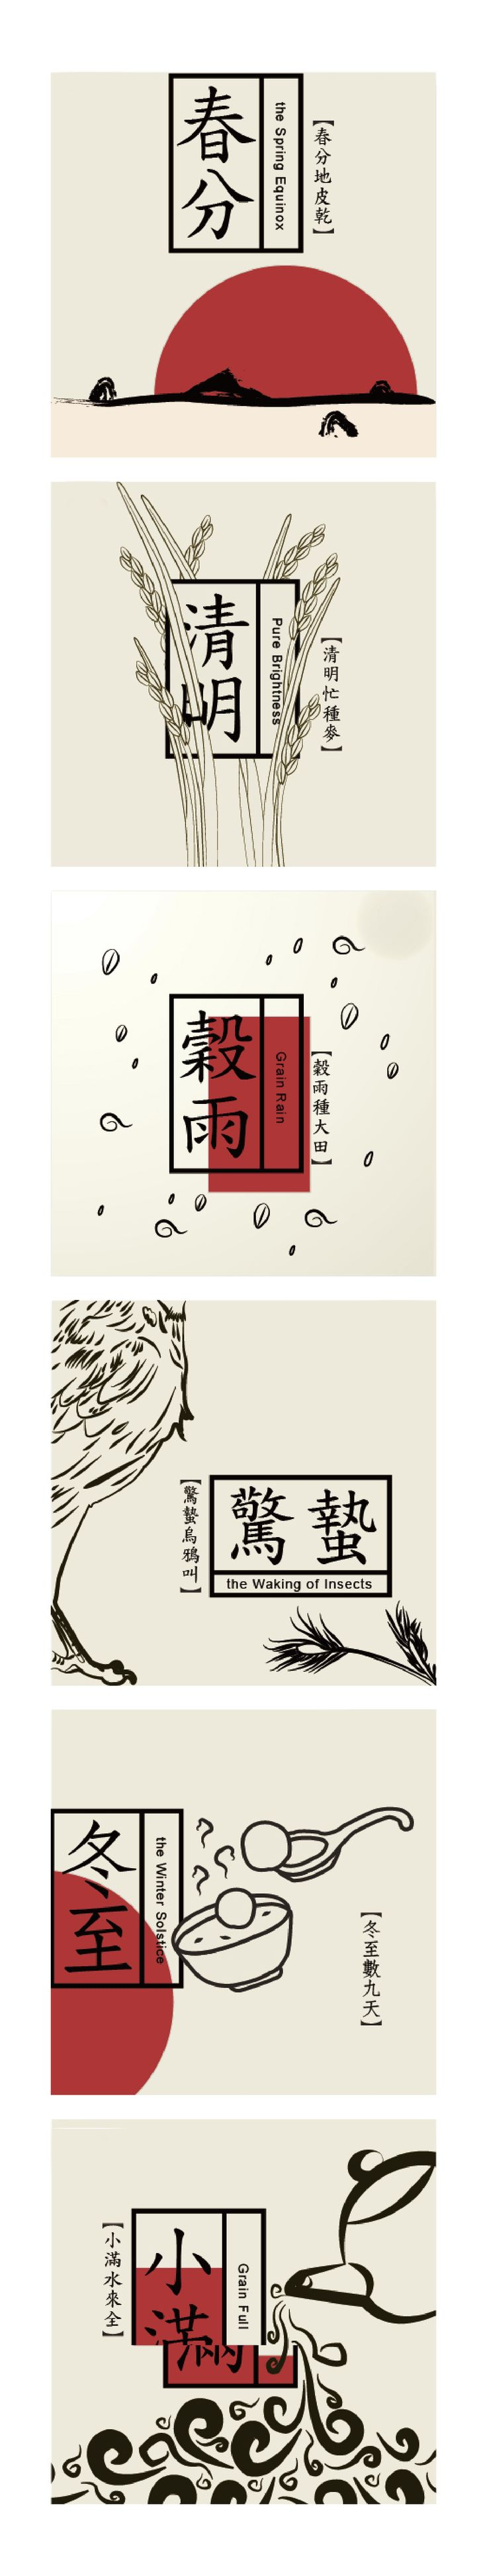 Graphic Design | Poster | Graphic Art | Chinese Art | Asian Graphic Style